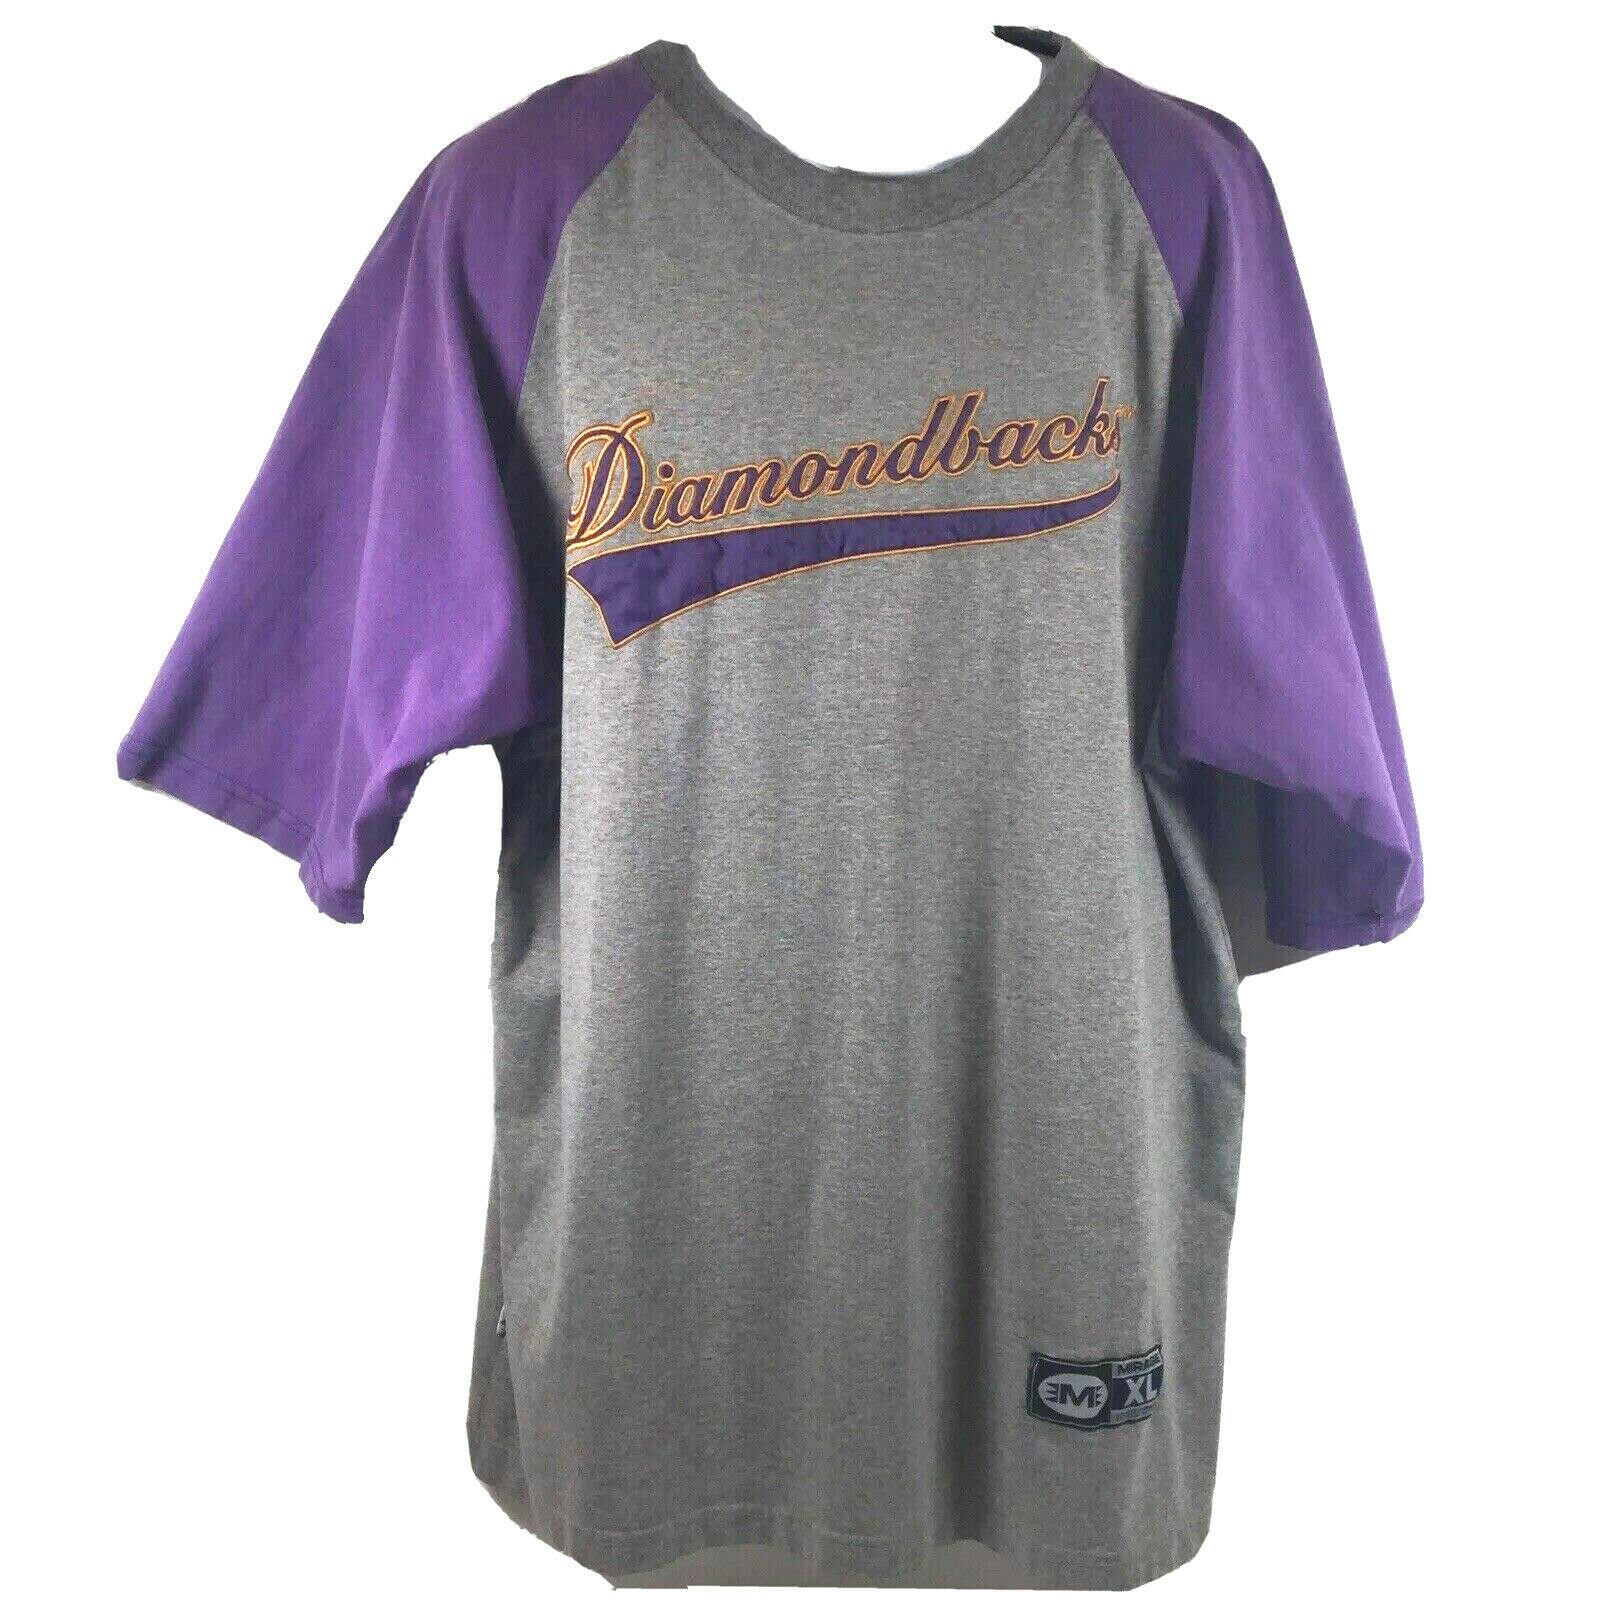 Primary image for Genuine MLB Arizona Diamondbacks Vintage 90s Sewn Script Logo T-Shirt Mens XL VG